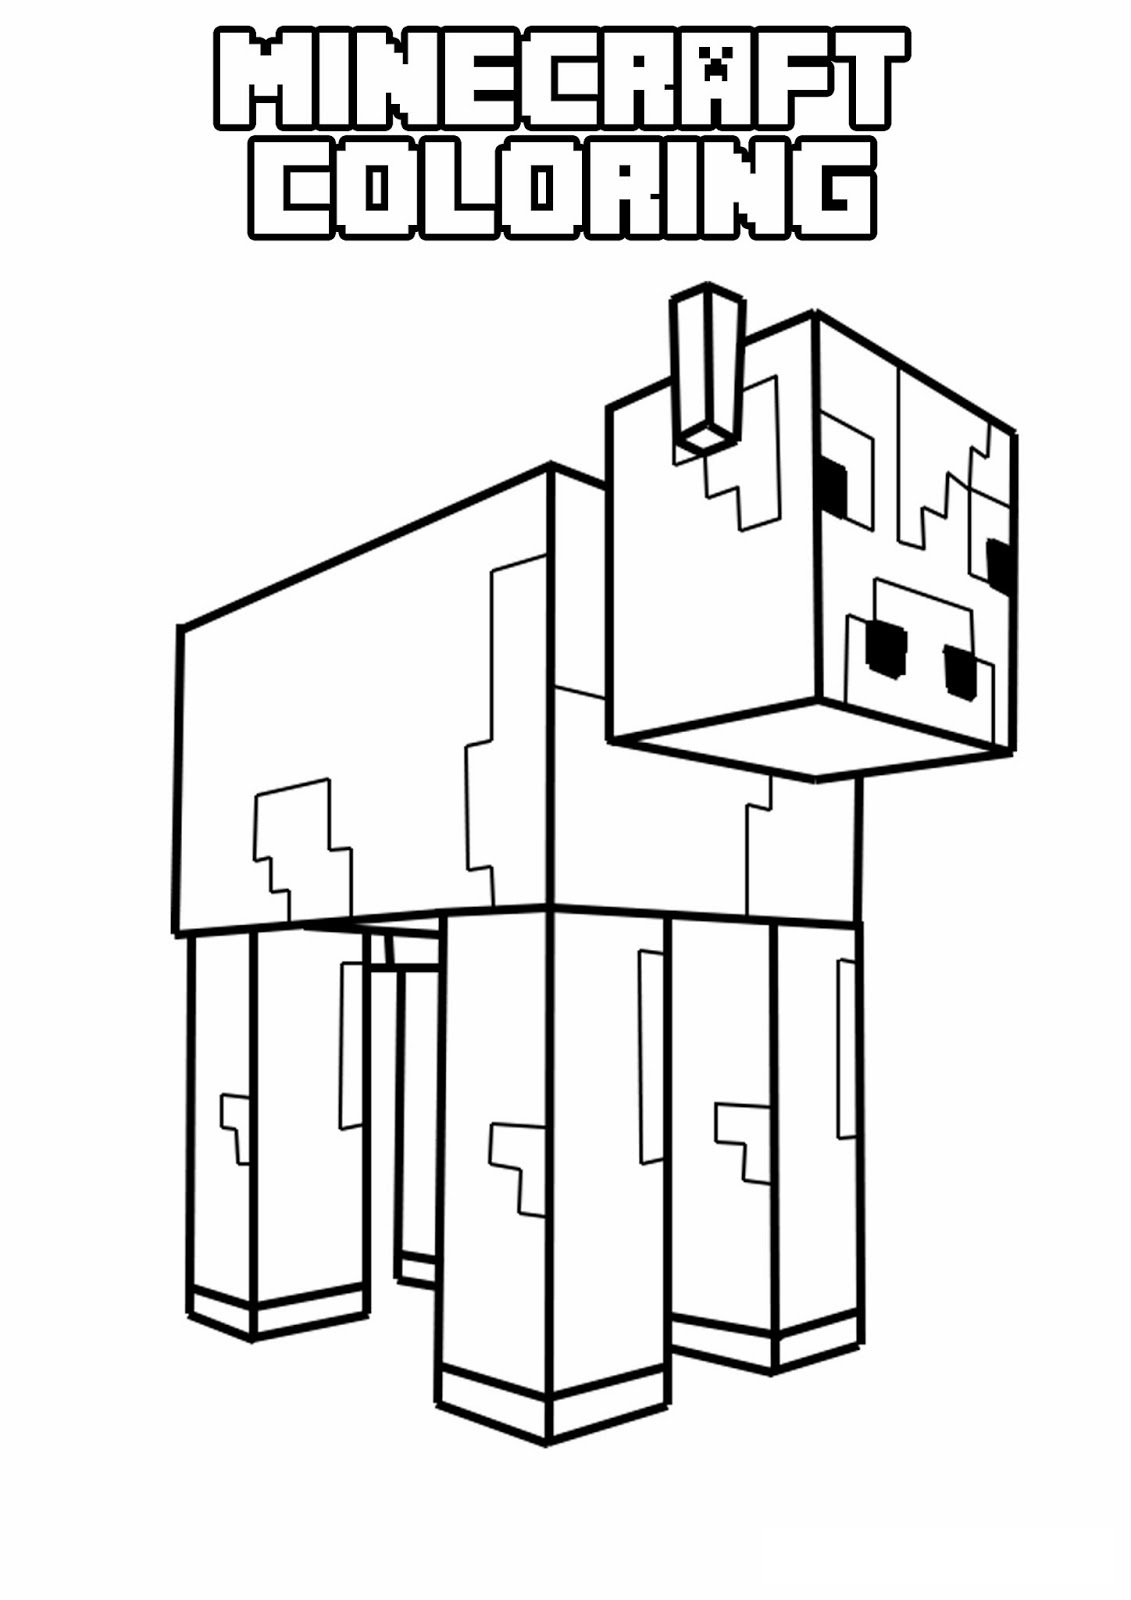 minecraft skin coloring pages minecraft skins coloring pages coloring home pages minecraft coloring skin